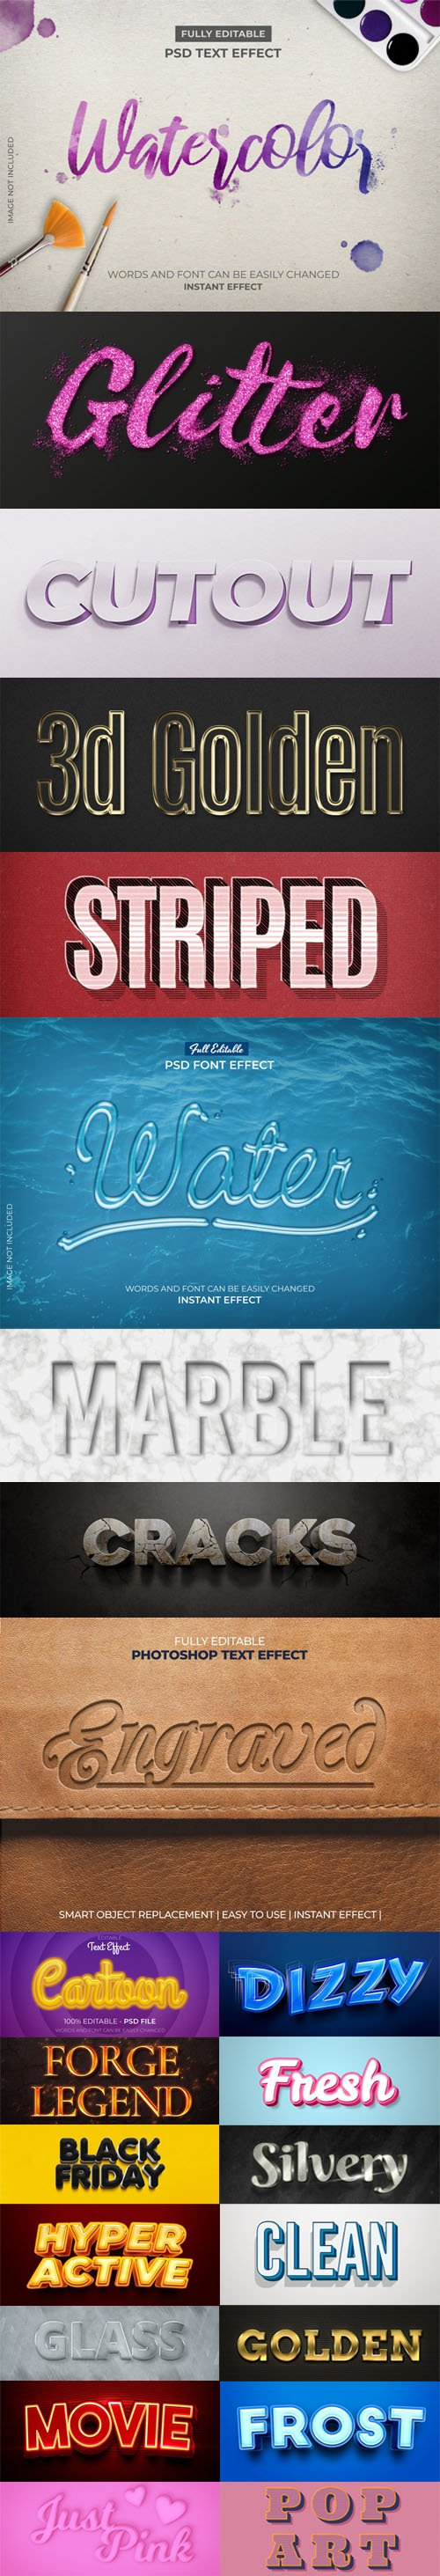 23 Text Styles - PSD Text Effects Collection